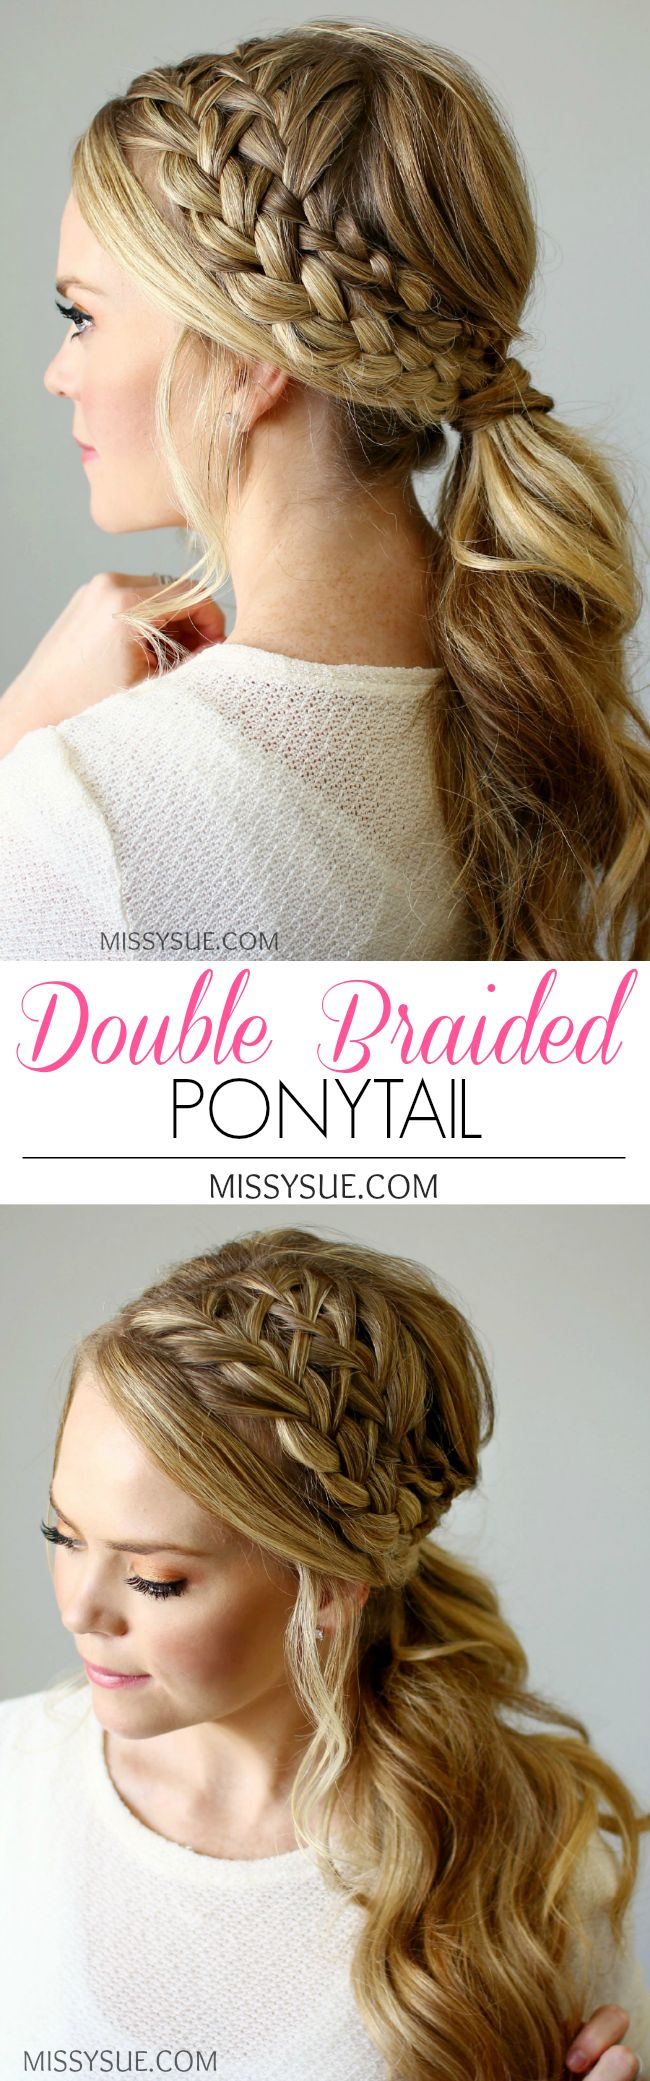 Swell 1000 Ideas About Easy Braided Hairstyles On Pinterest Types Of Hairstyle Inspiration Daily Dogsangcom